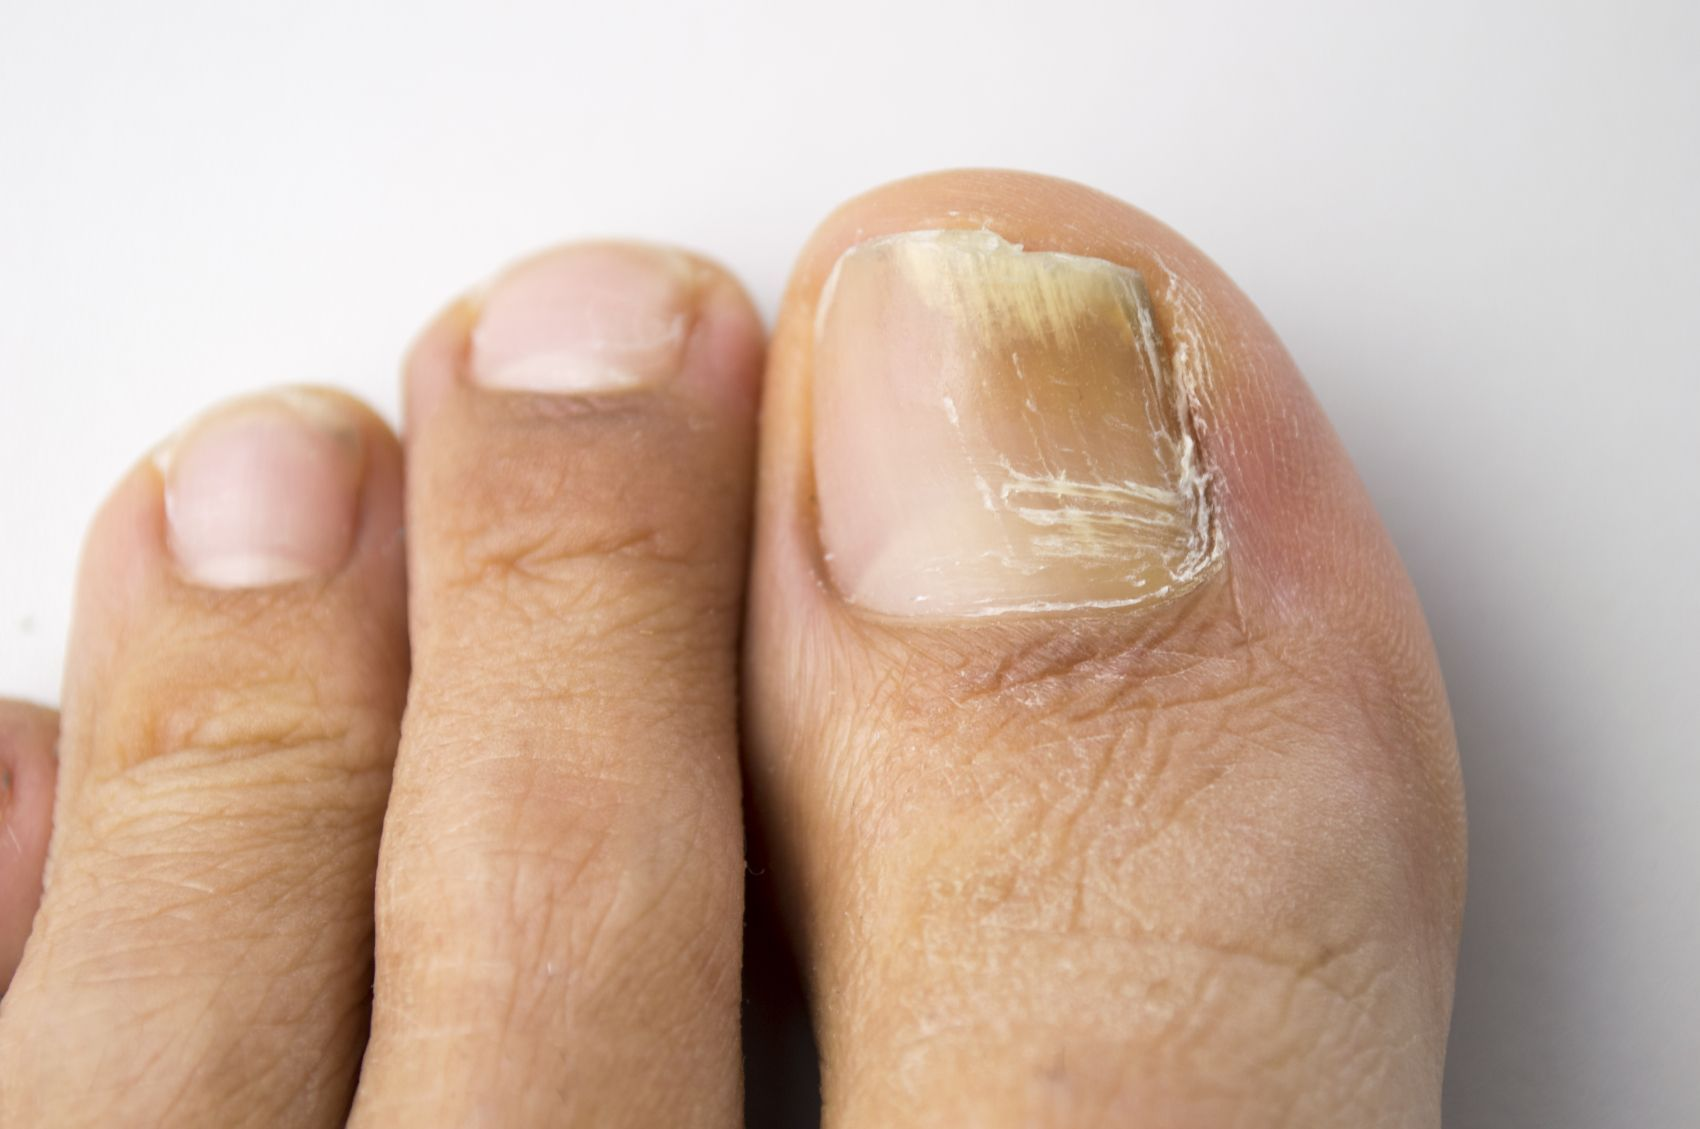 Fight toenail fungus at its source with these six simple toenail